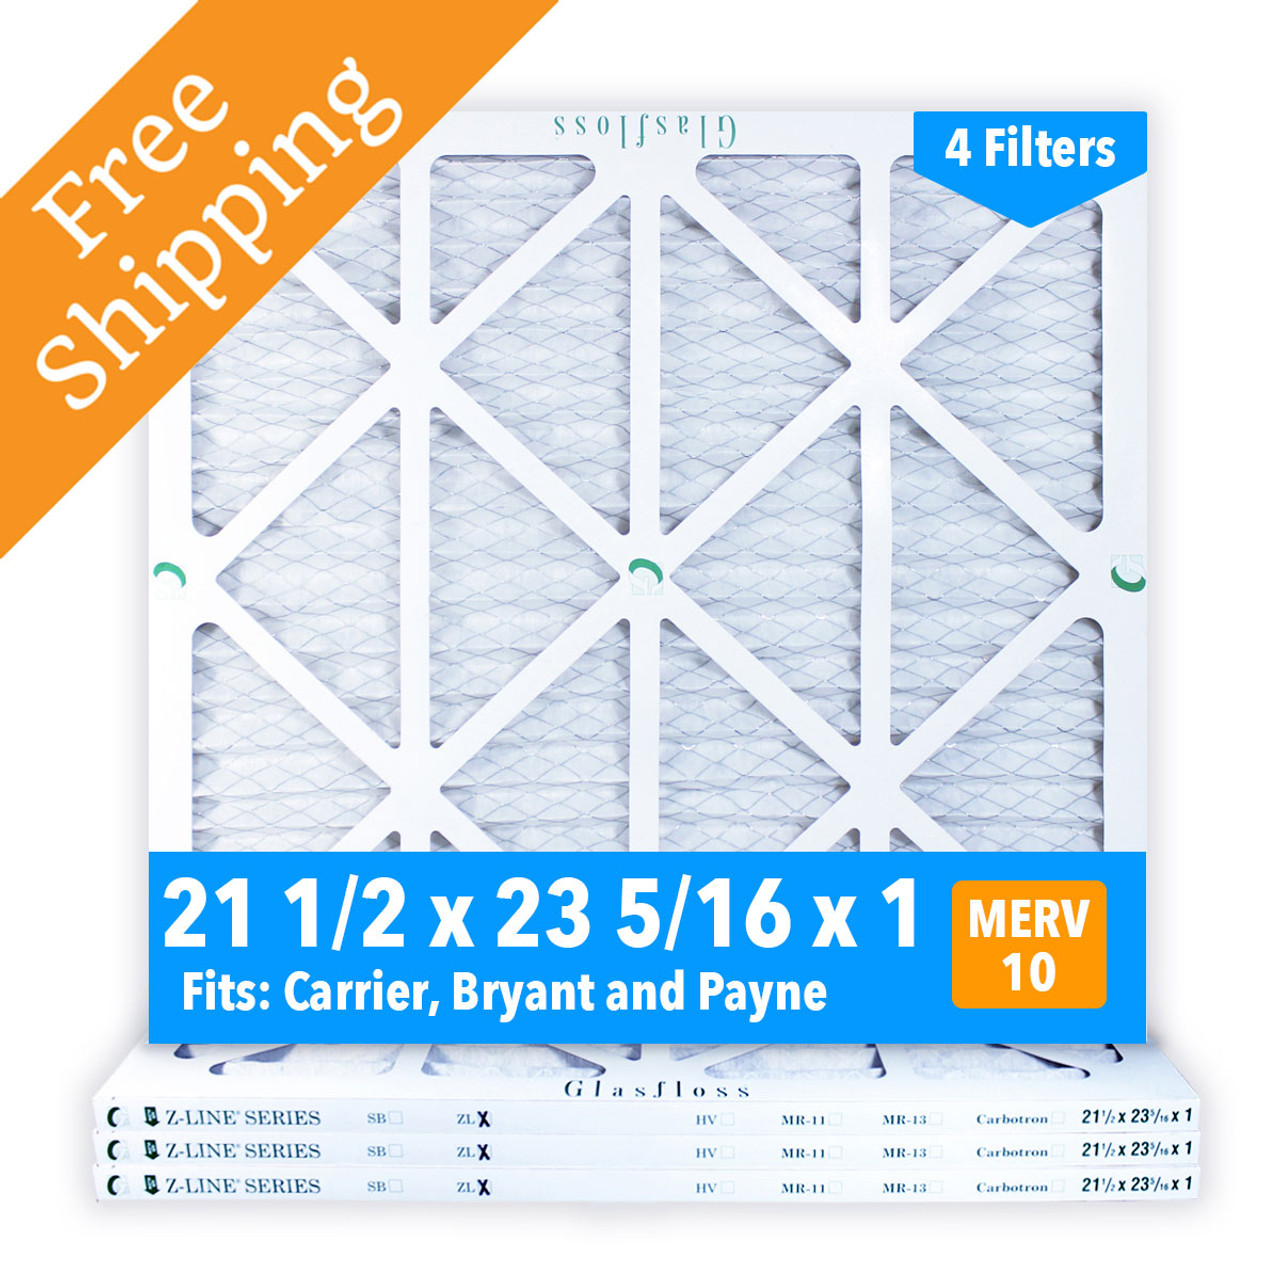 21 1 2x23 5 16x1 Merv 10 Glasfloss Pleated Air Filter Box Of 4 Made In Usa